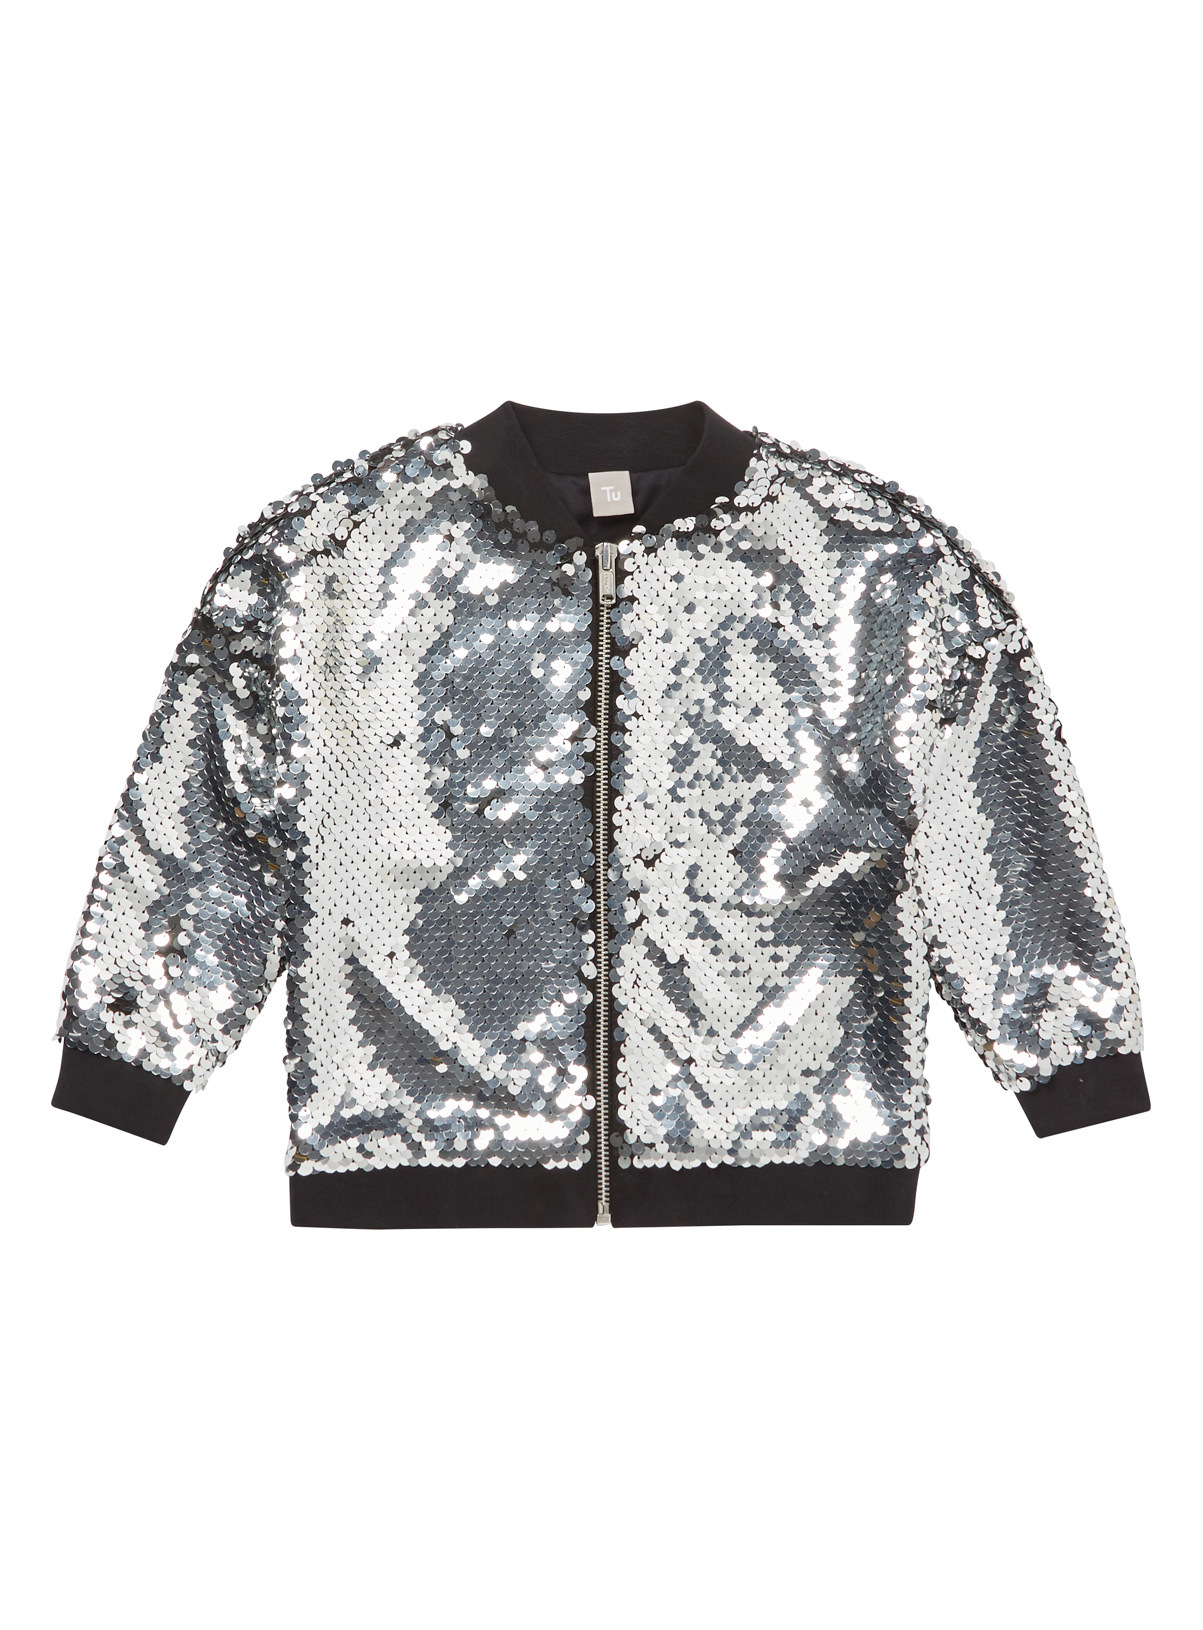 All Girl's Clothing Silver Sequin Bomber Jacket (3-14 years) | Tu ...